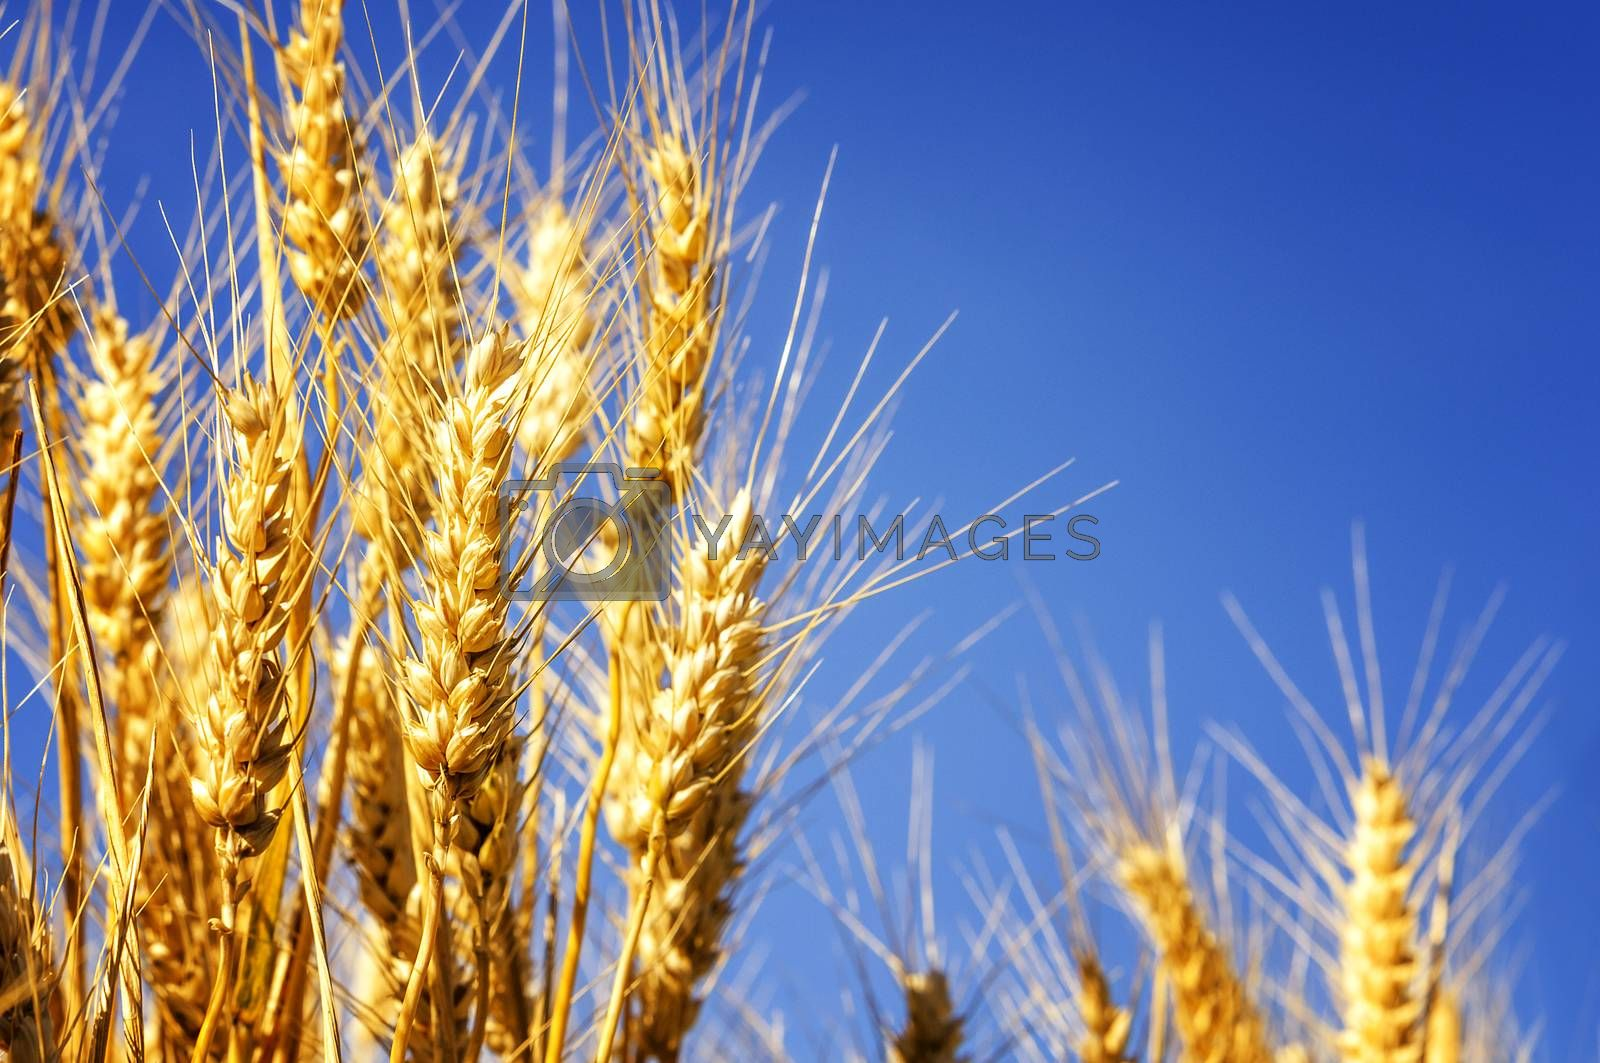 Royalty free image of Wheat field  by ventdusud